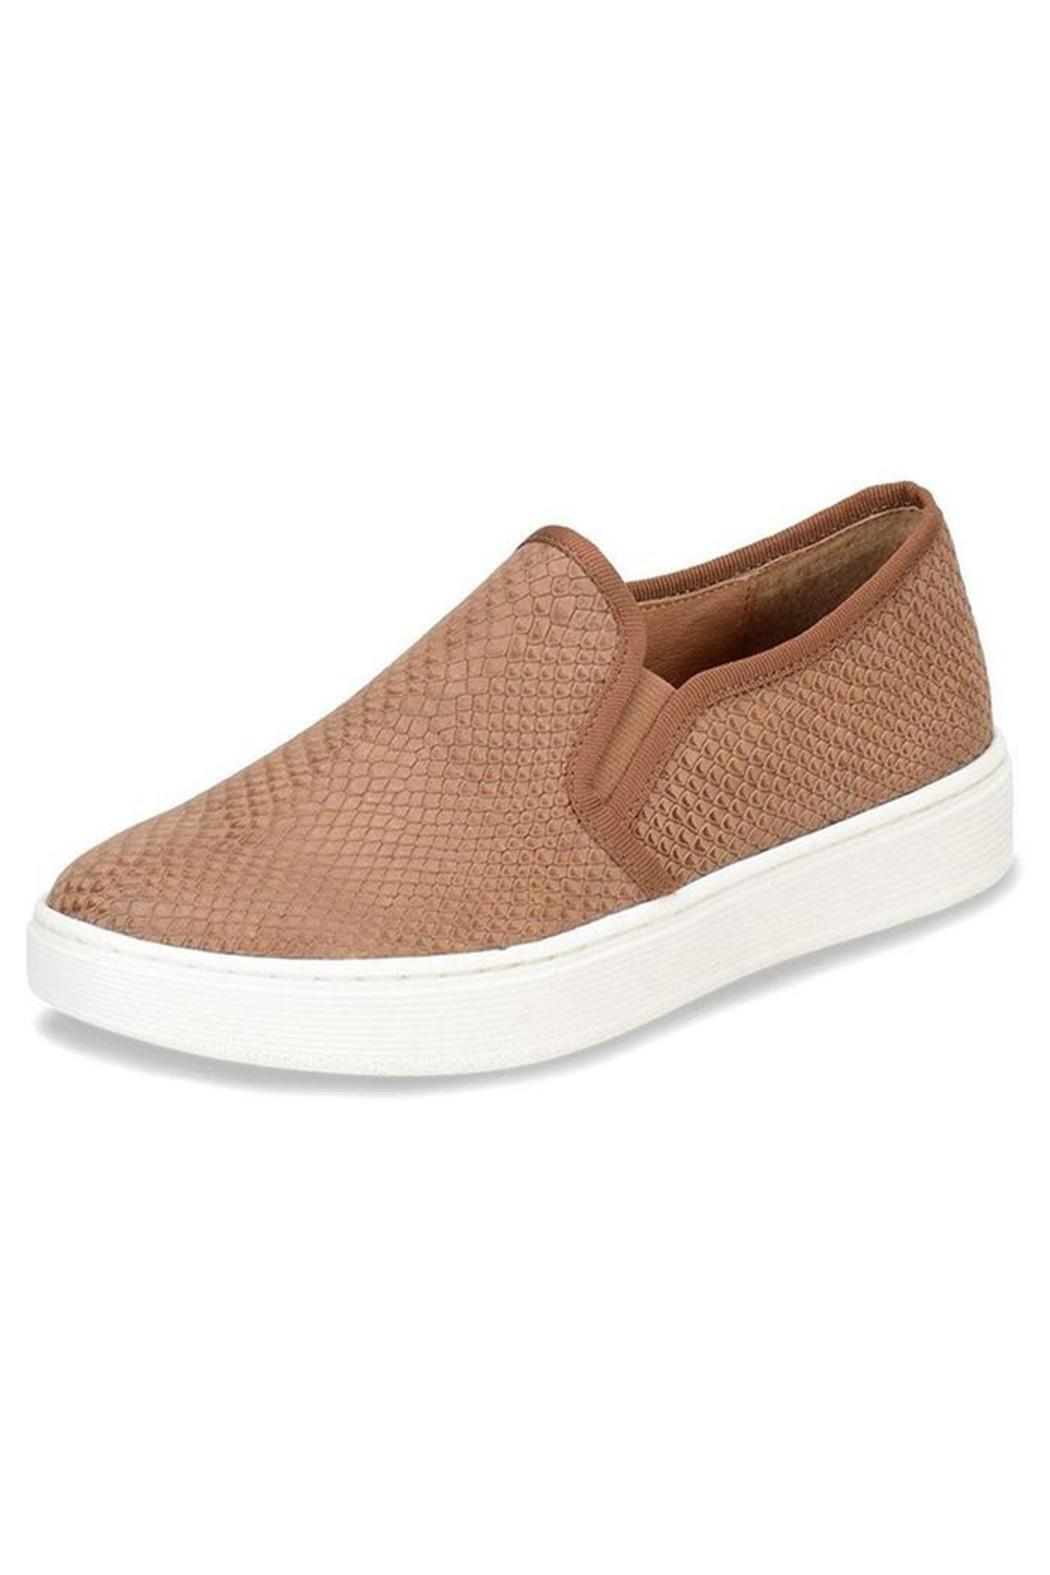 Somers Textured Suede Slip On Sneakers Qjx2Uc